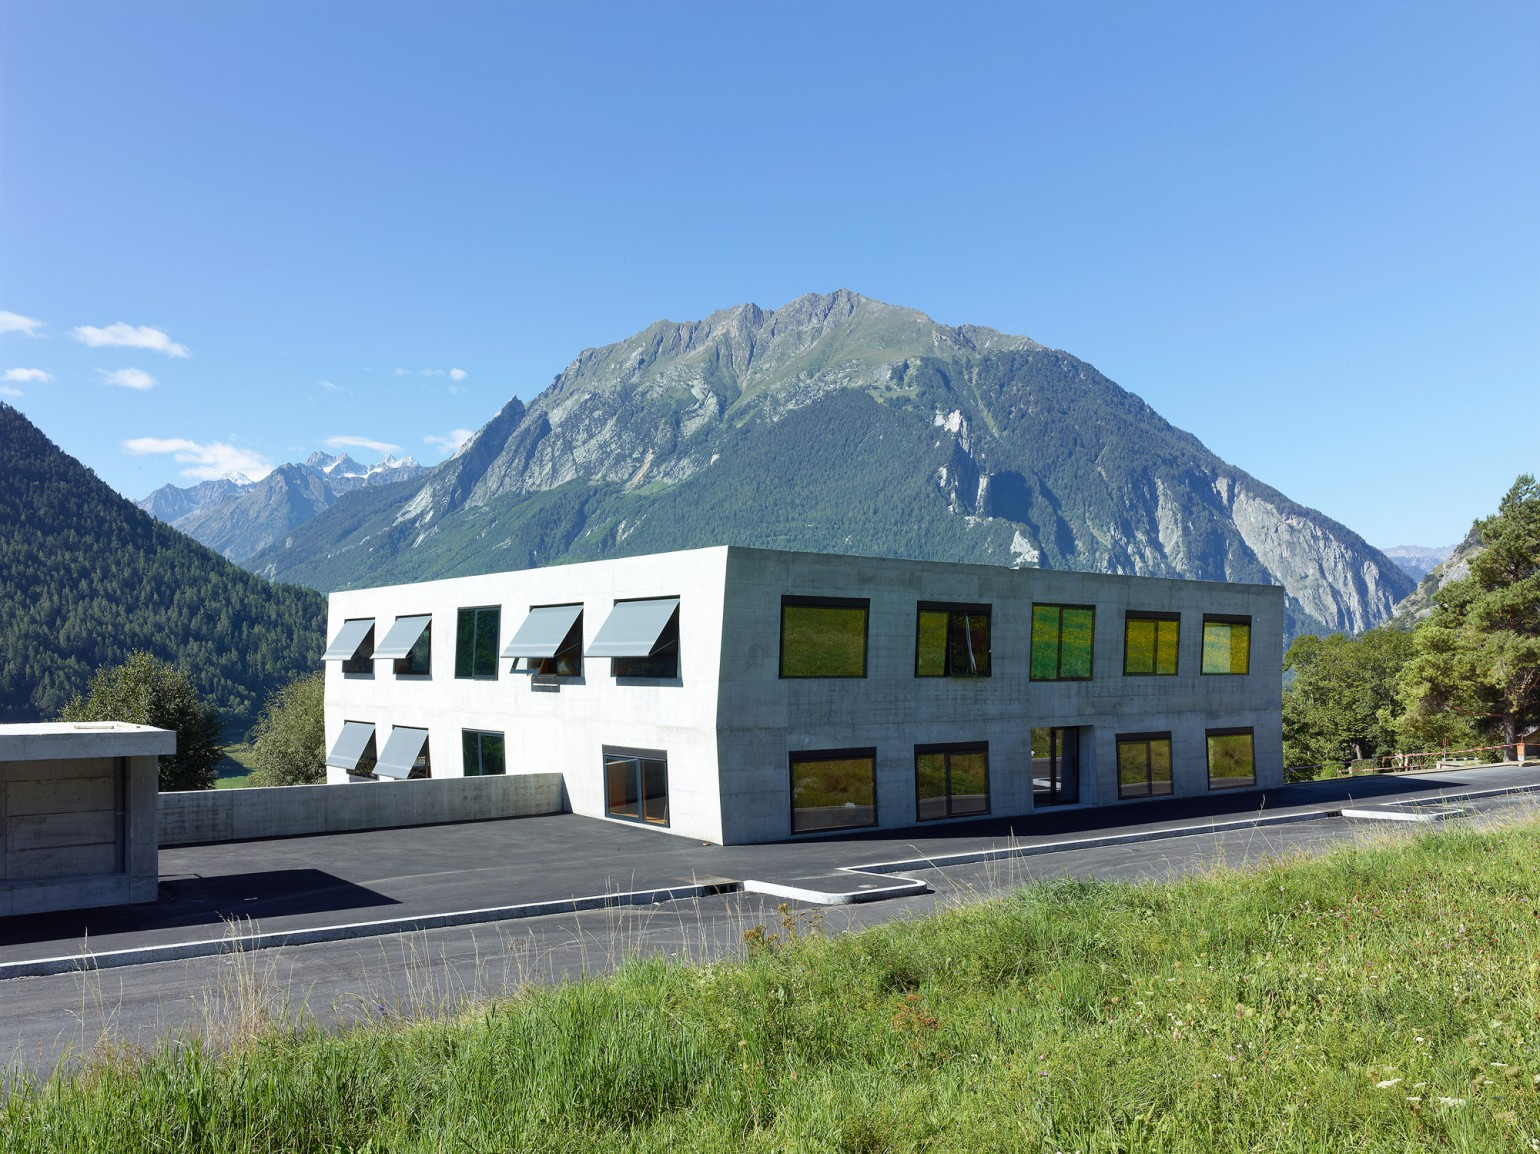 Ecole primaire meyer architecture sion Meyer architecture